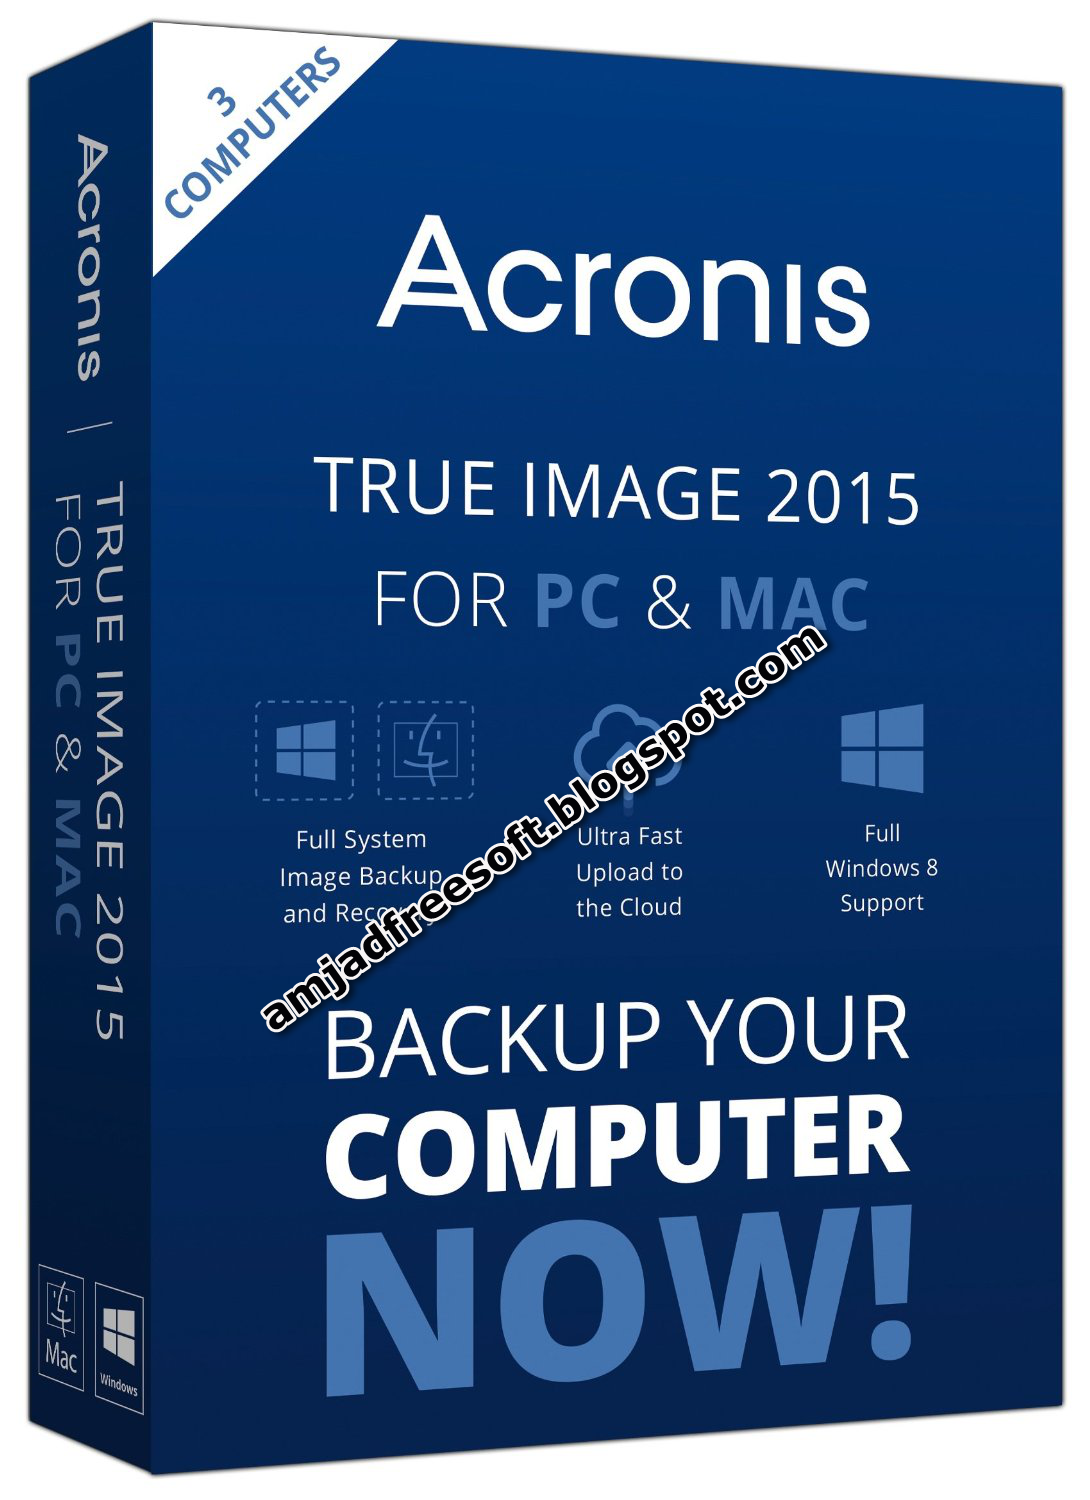 Acronis true image 2015 download full version crack betterseven.